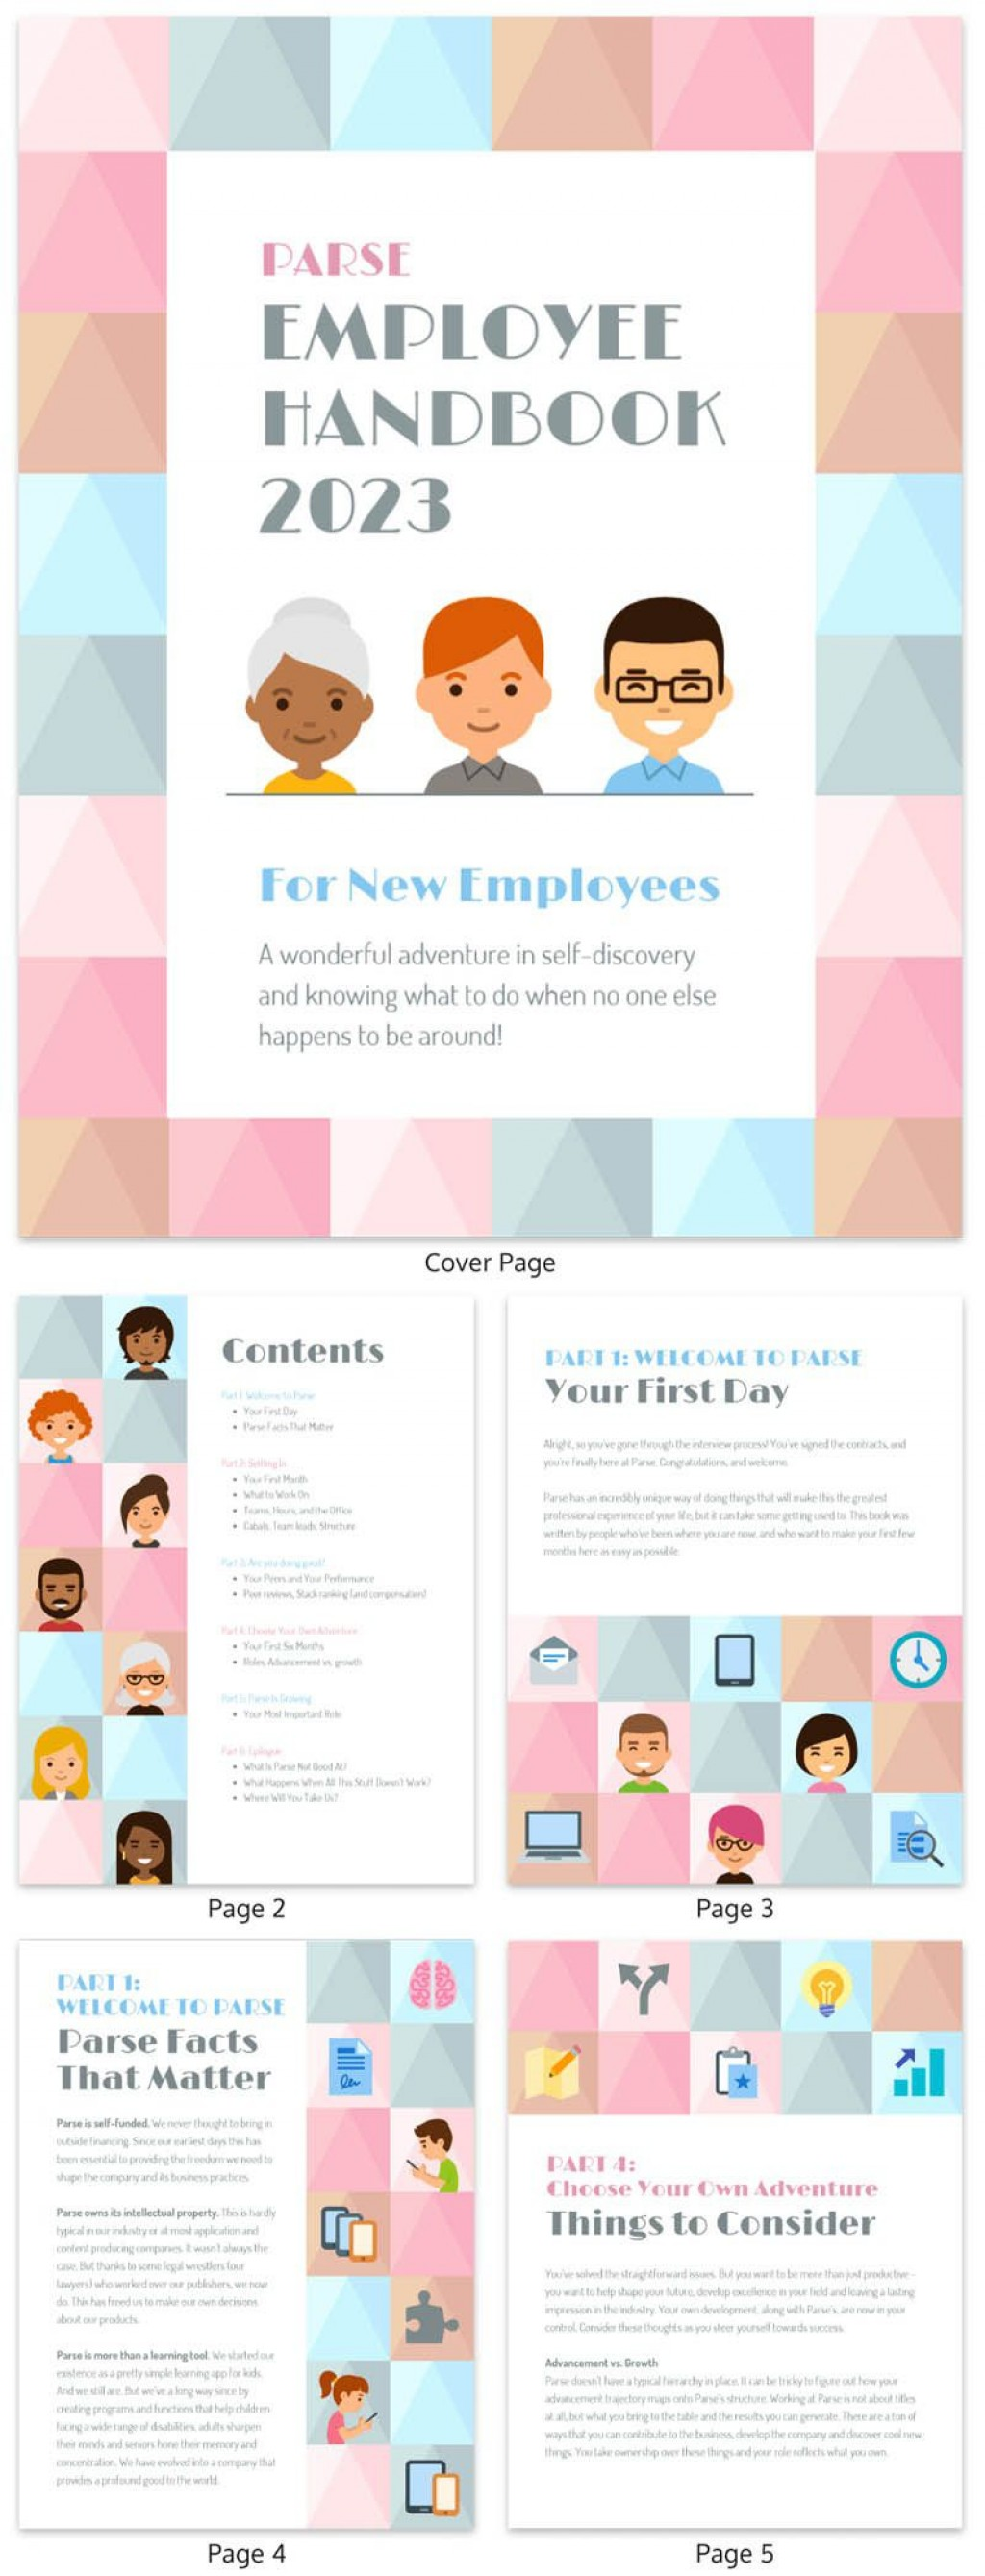 008 Beautiful Free Employee Handbook Template Photo  Templates Sample Canada Philippine In SingaporeLarge